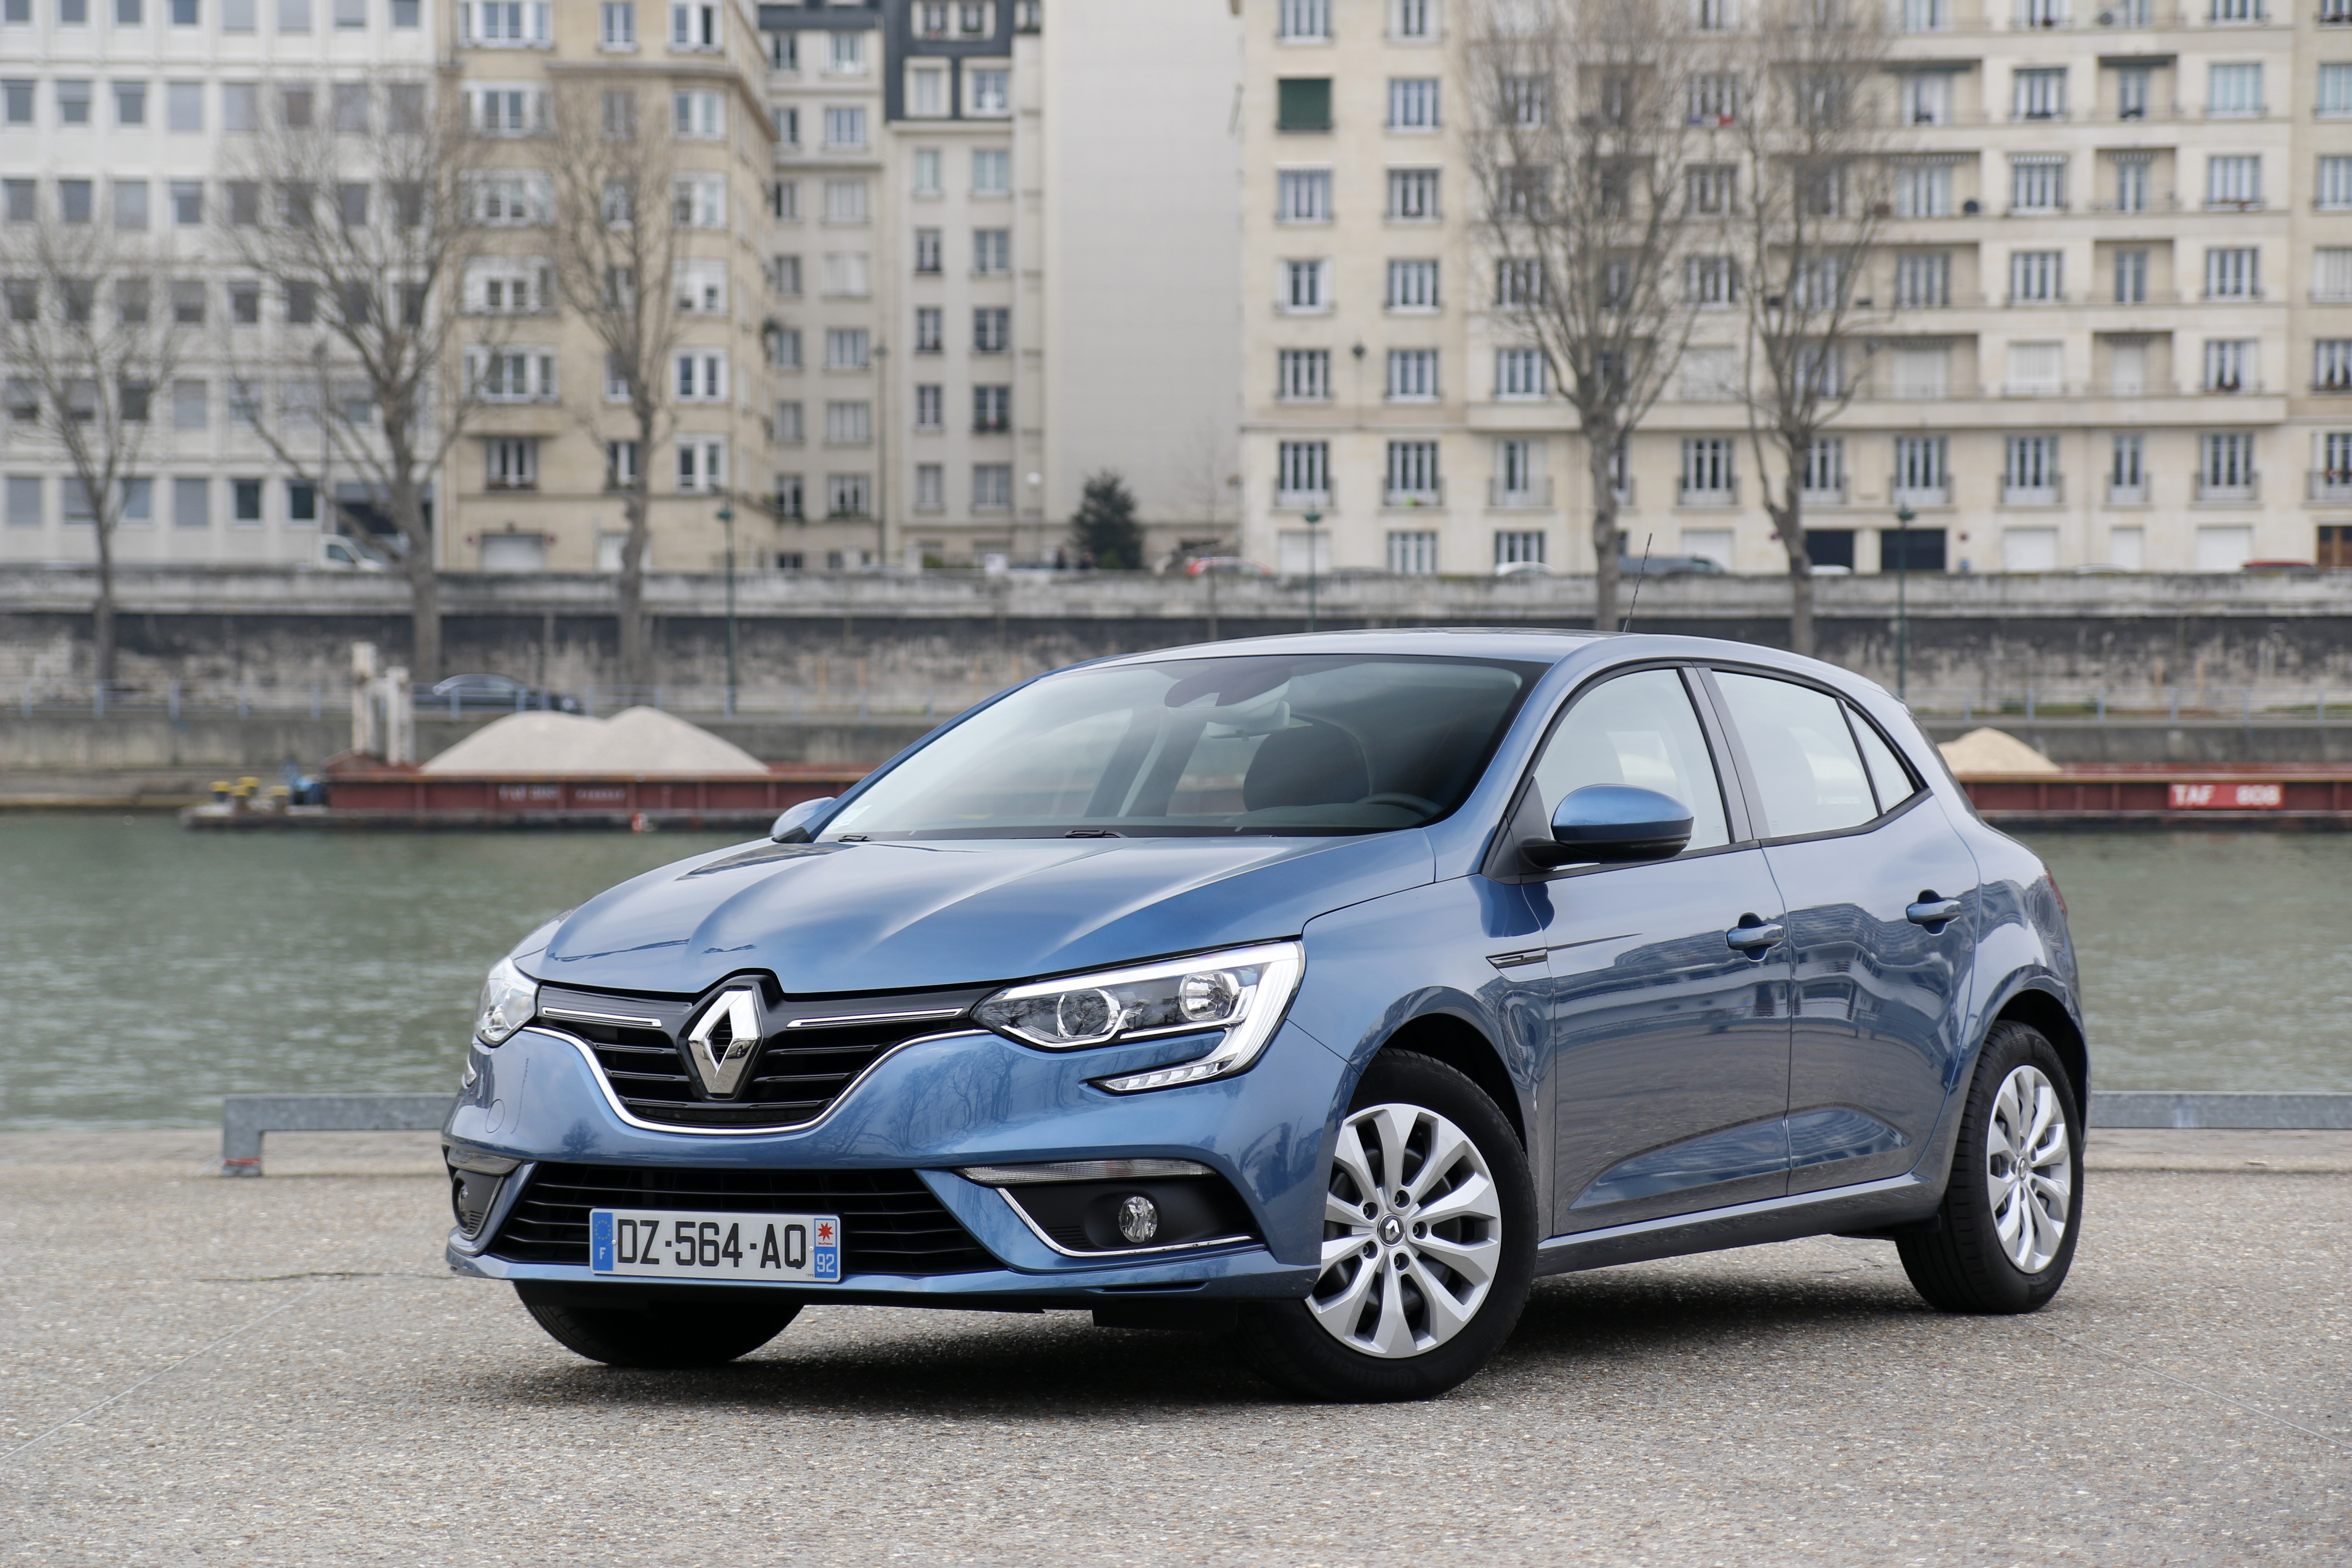 Renault ch photo - 3